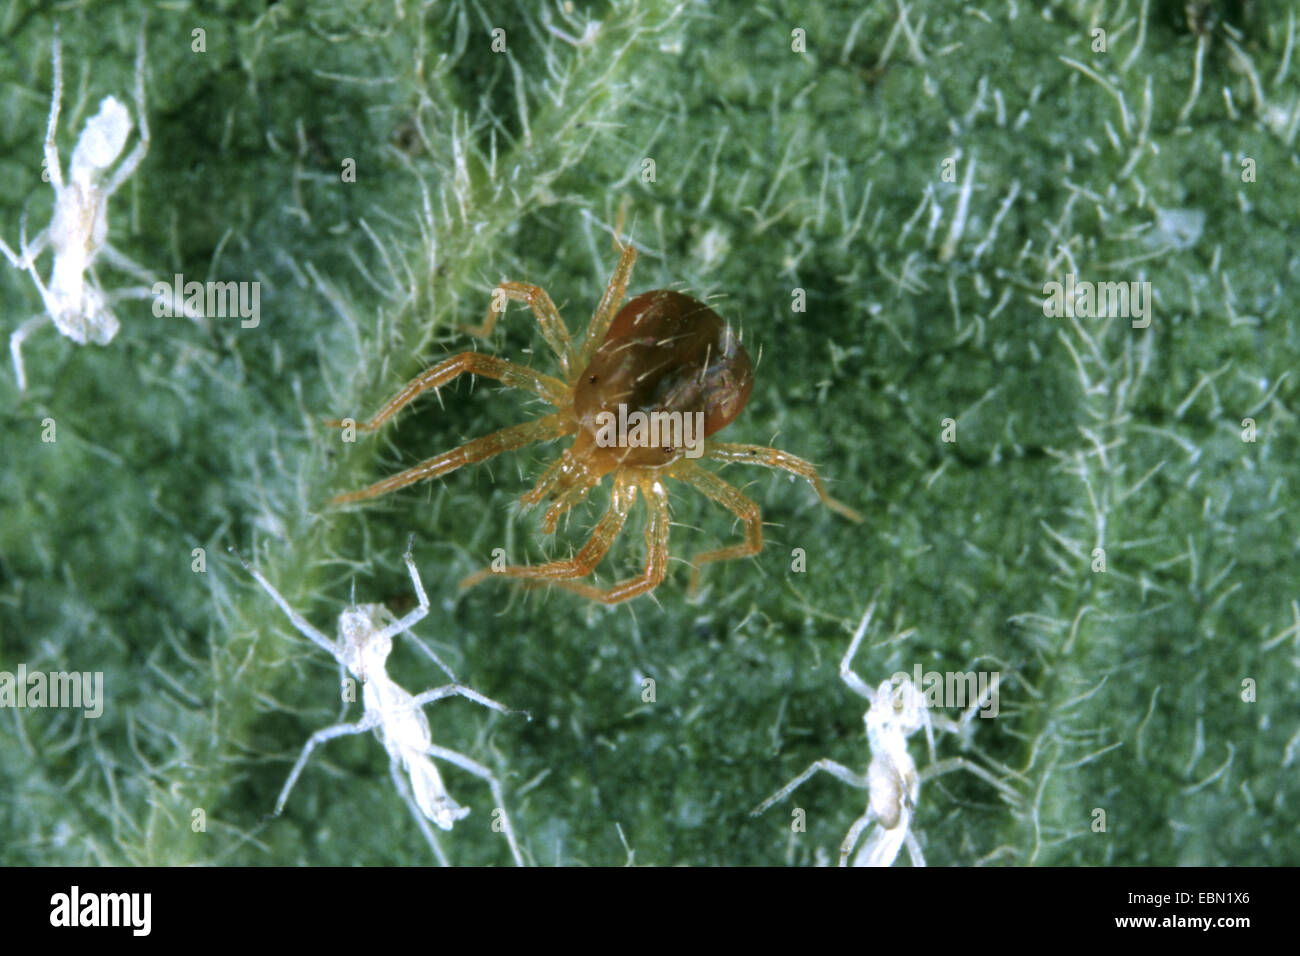 Mite (Anystis agilis), with exhausted prey, Germany - Stock Image